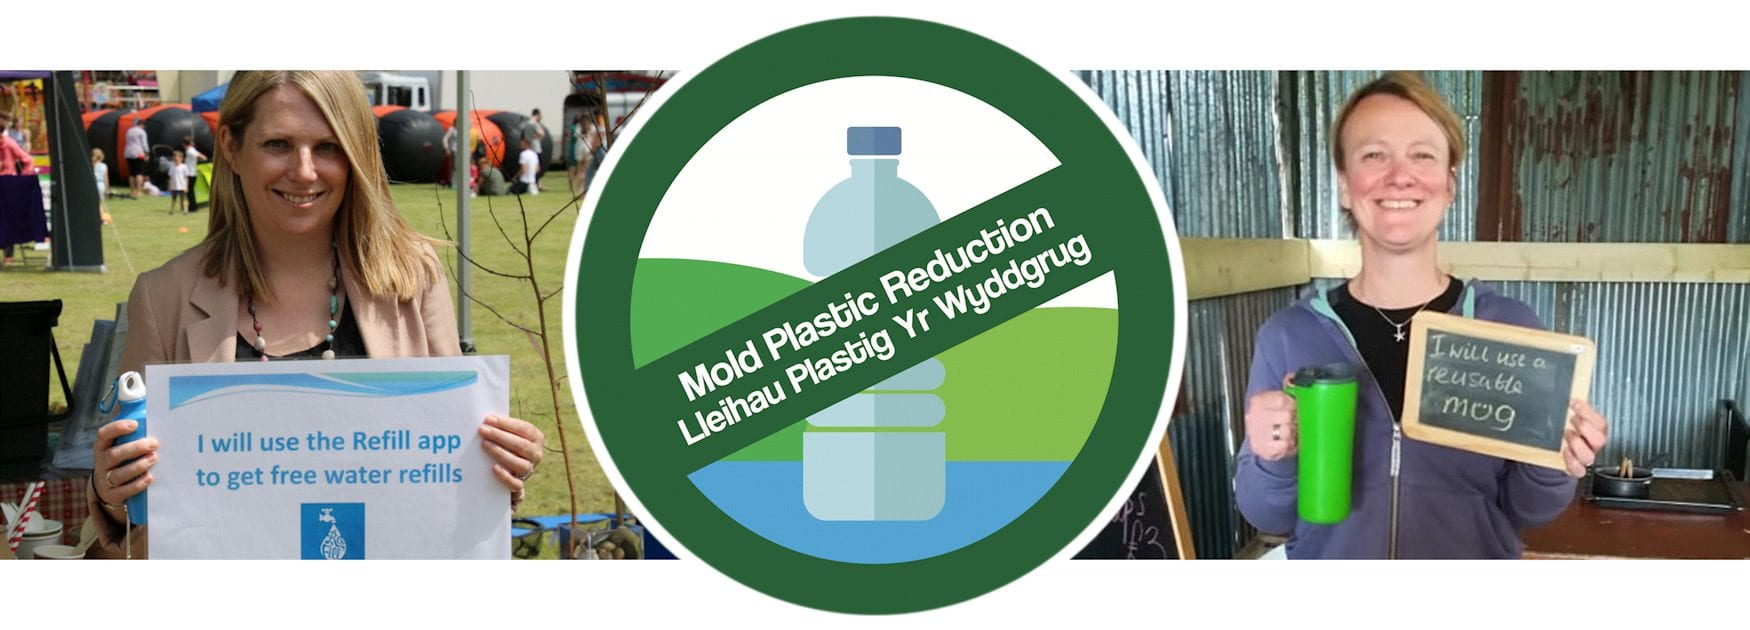 Header image for On the Go page showing pledges to use fewer plastic bottles